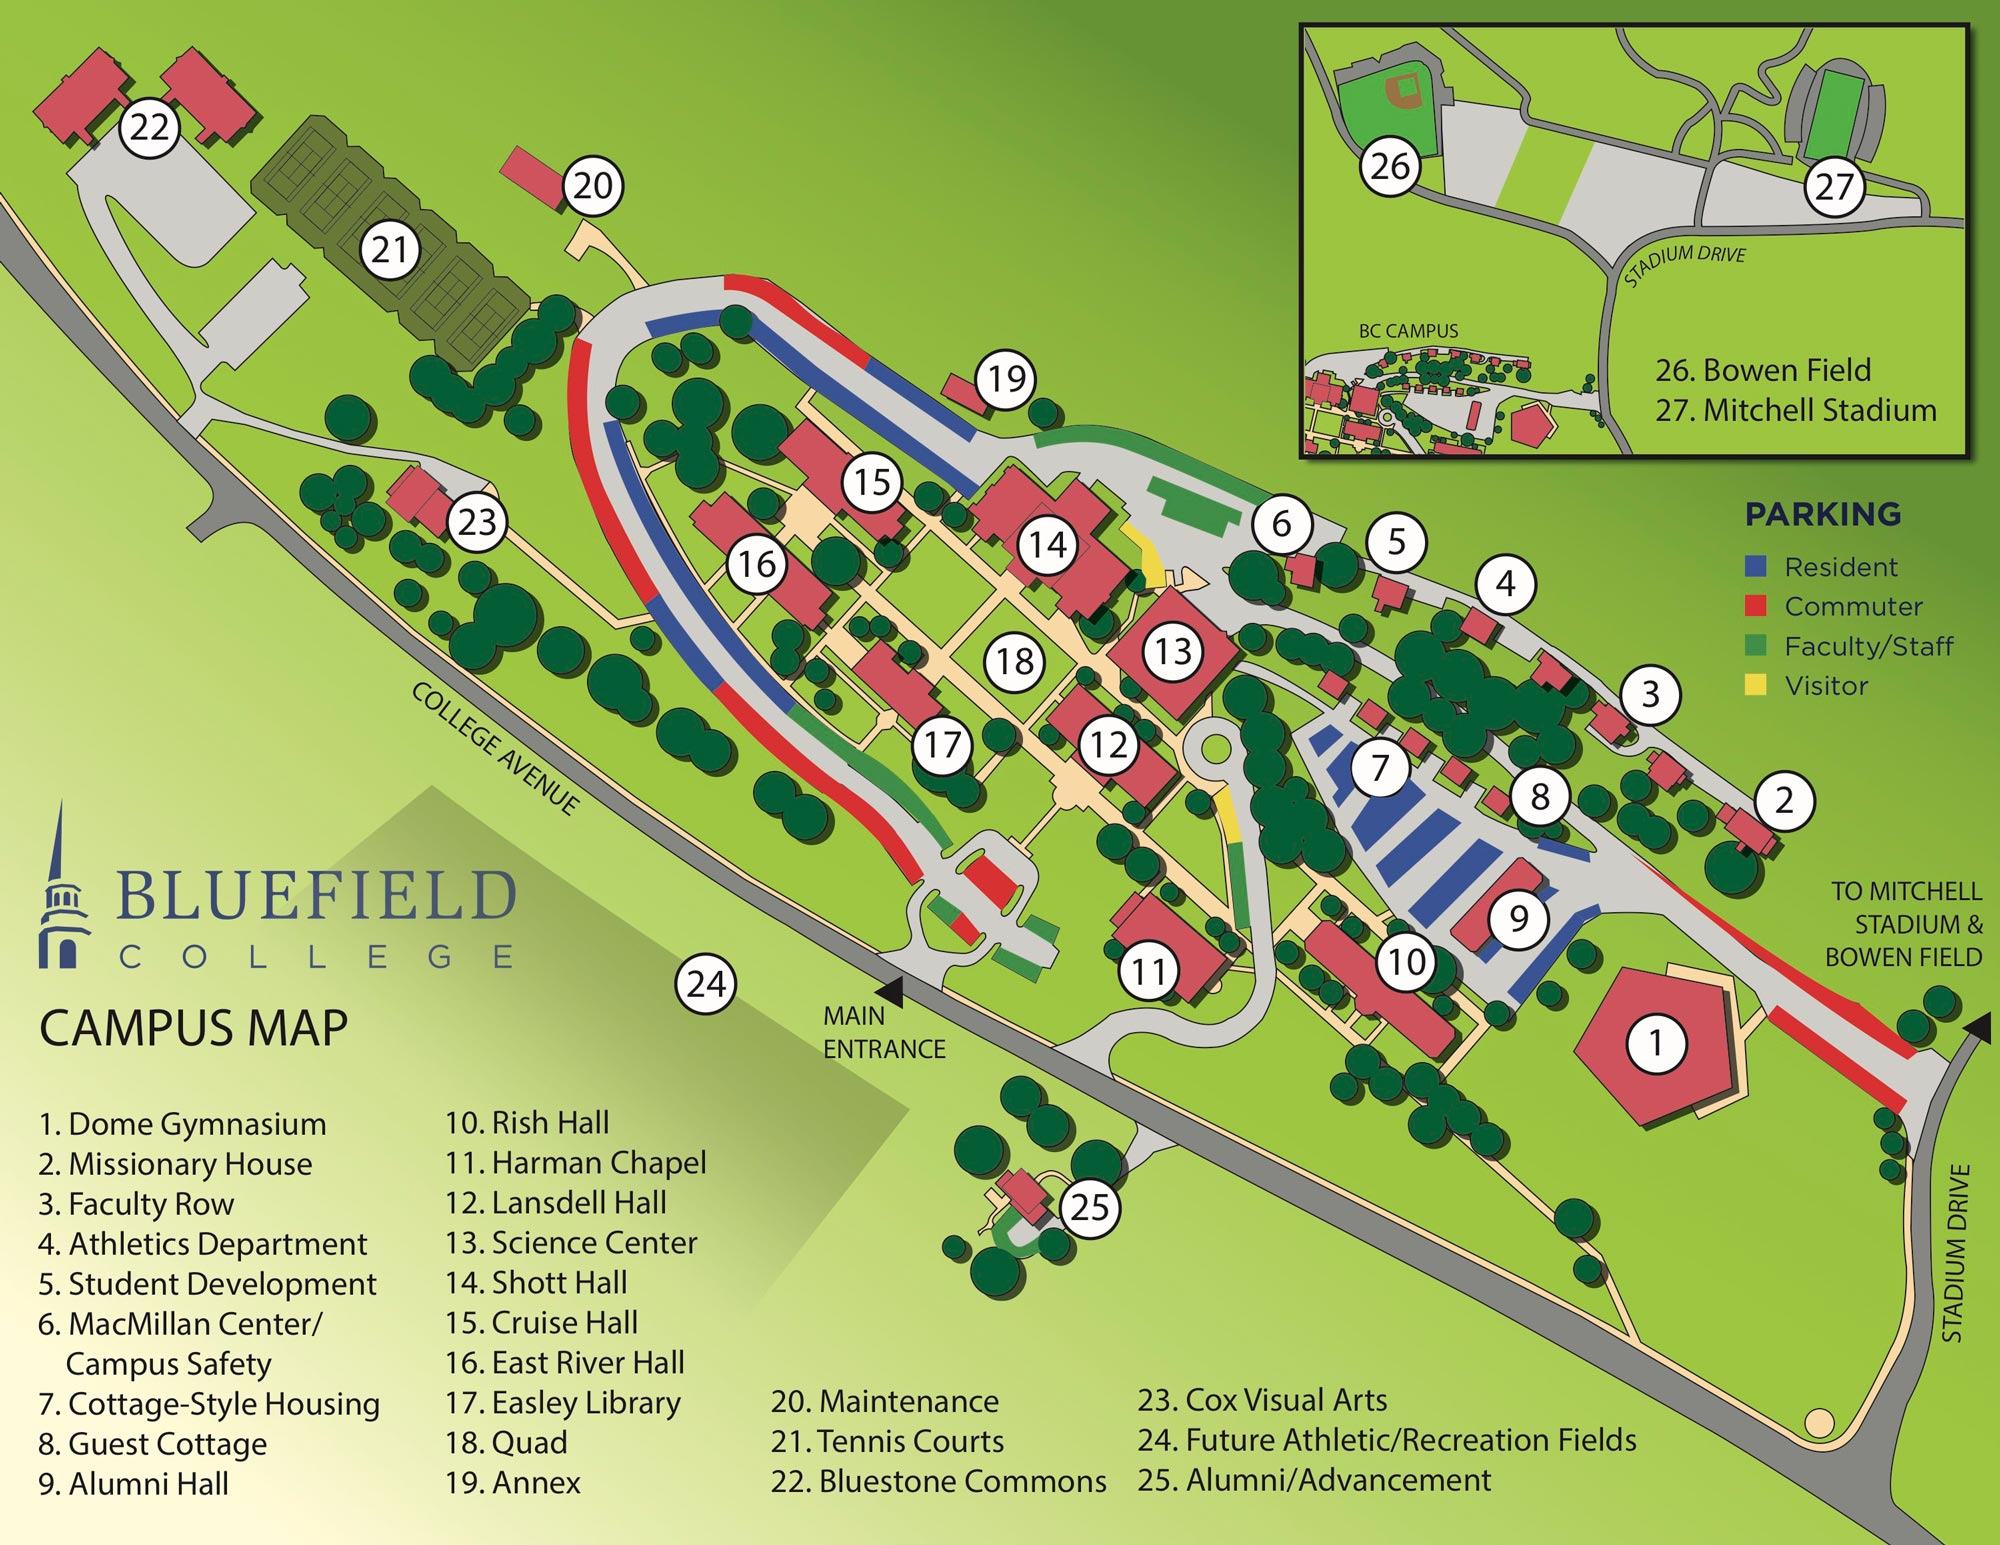 Unc Greensboro Campus Map.Campus Directions